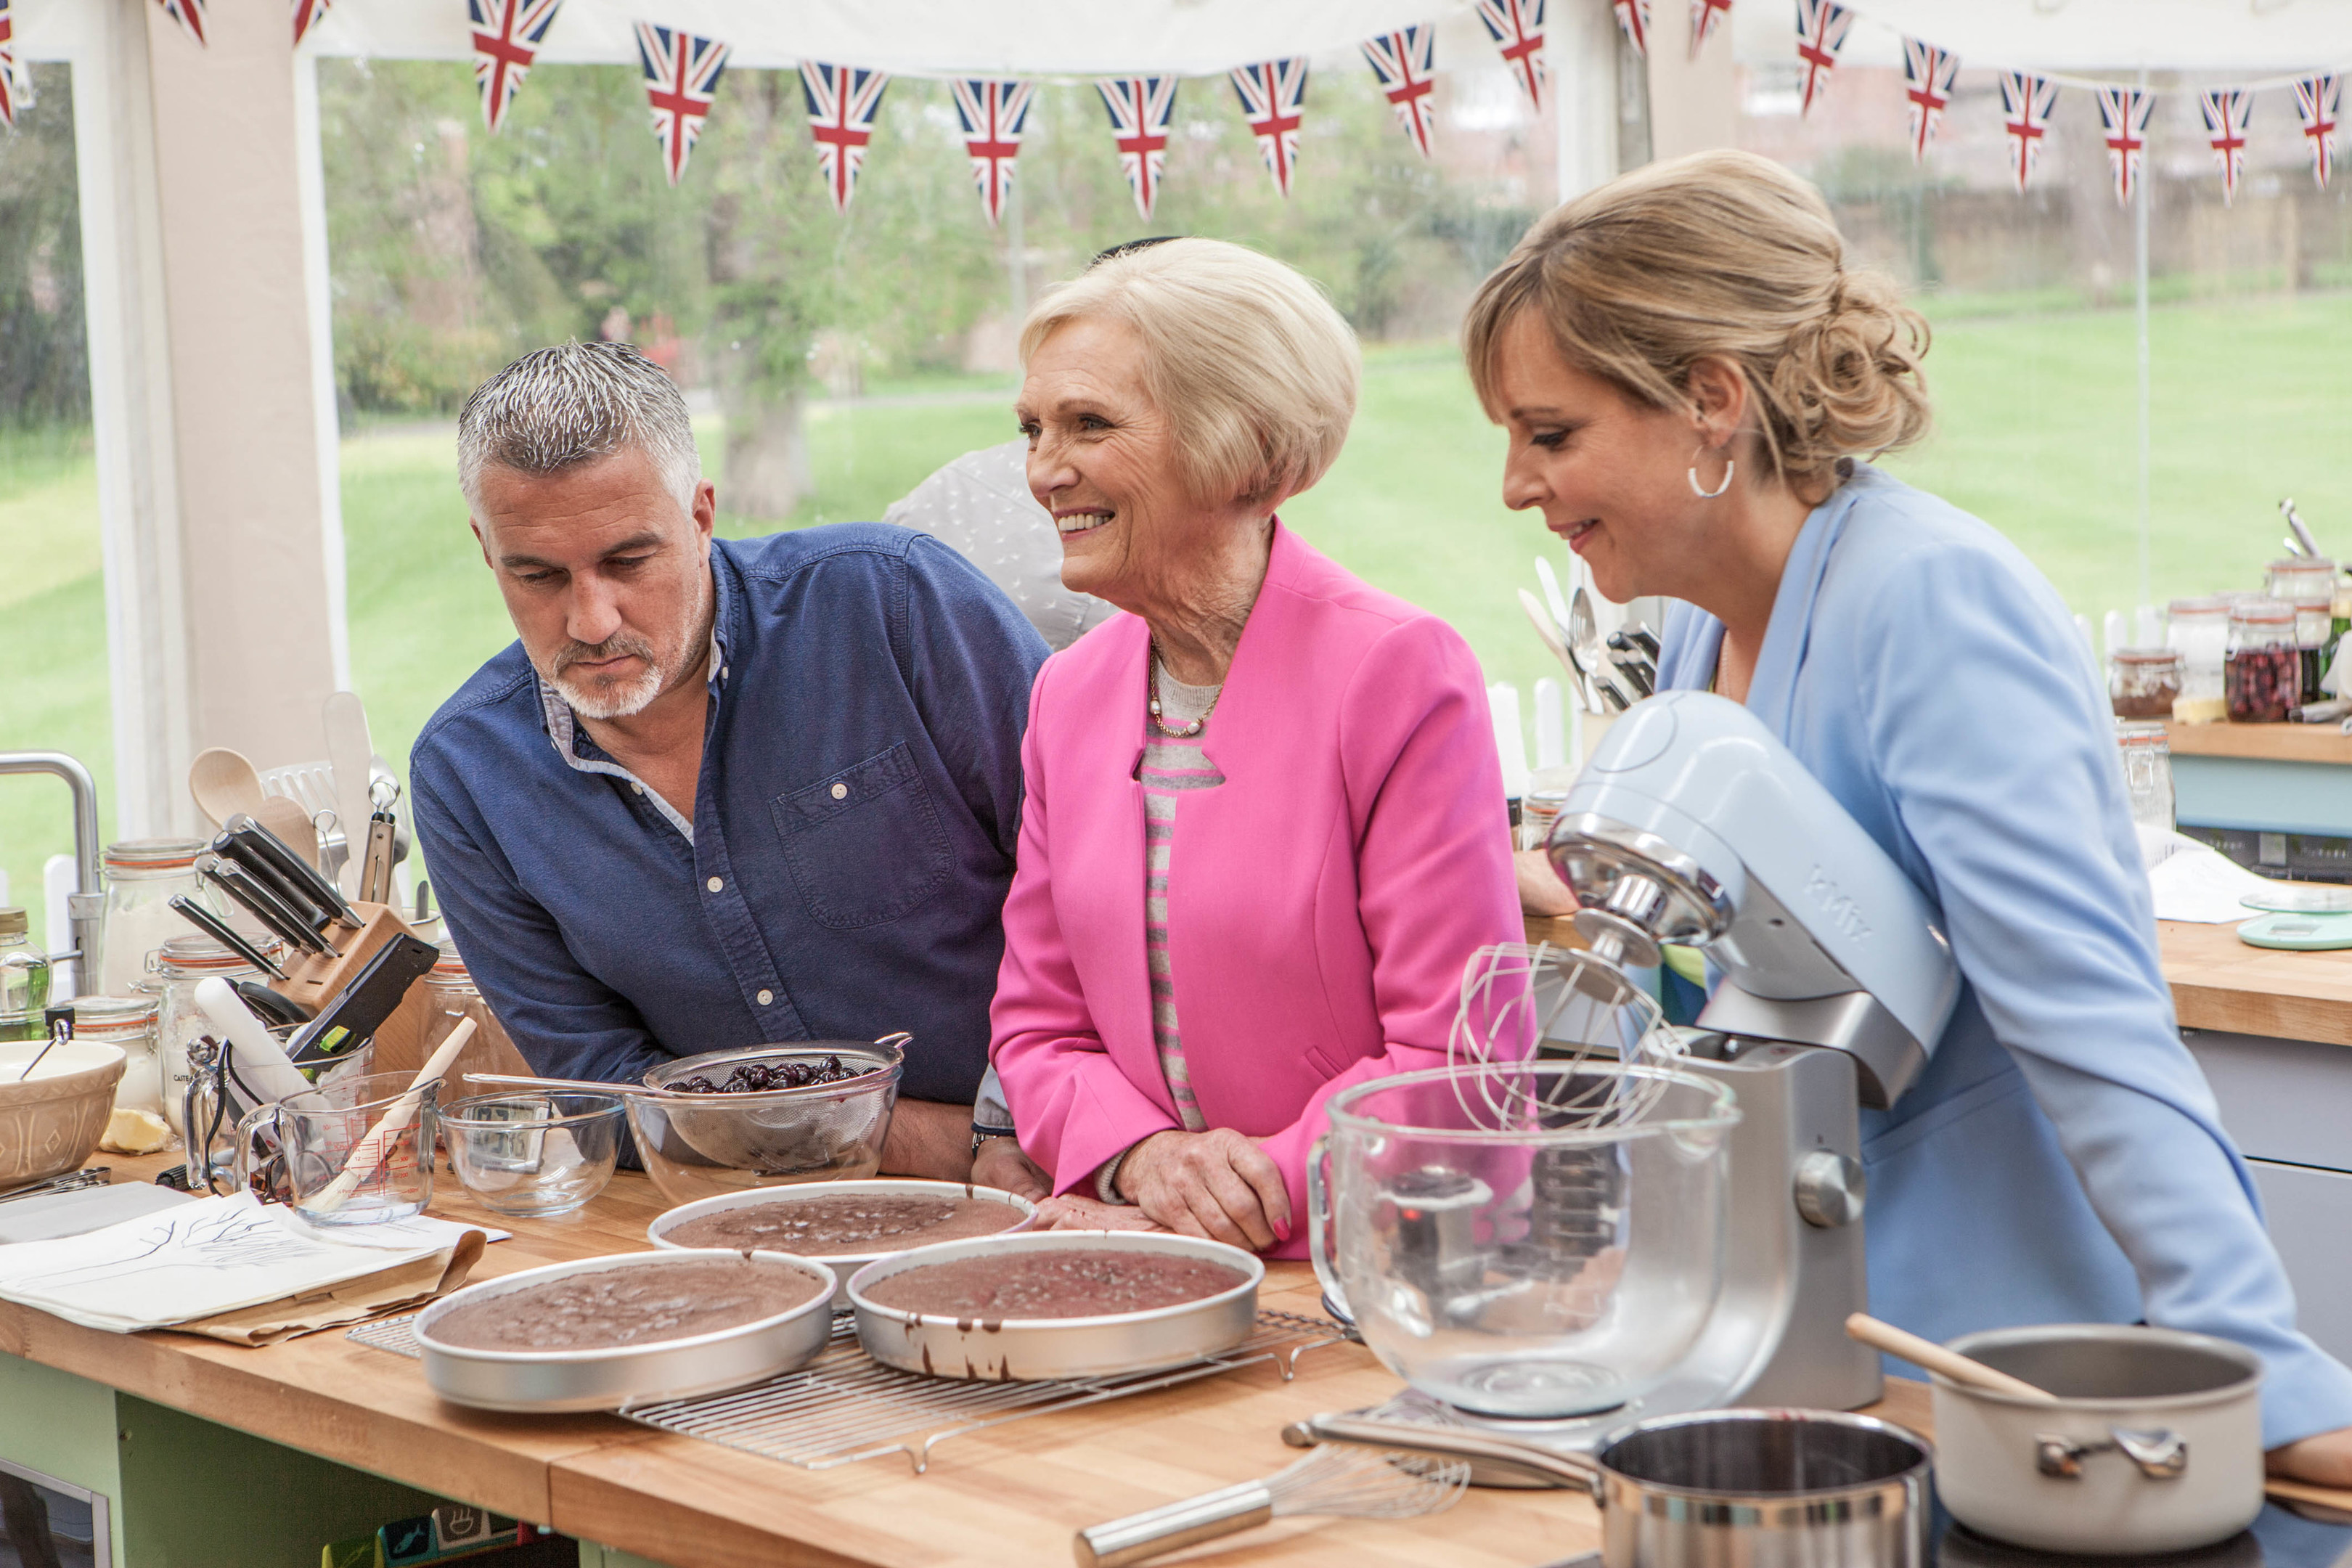 Paul Hollywood, Mary Berry, Mel Giedroyc (Love Productions/Mark Bourdillon)